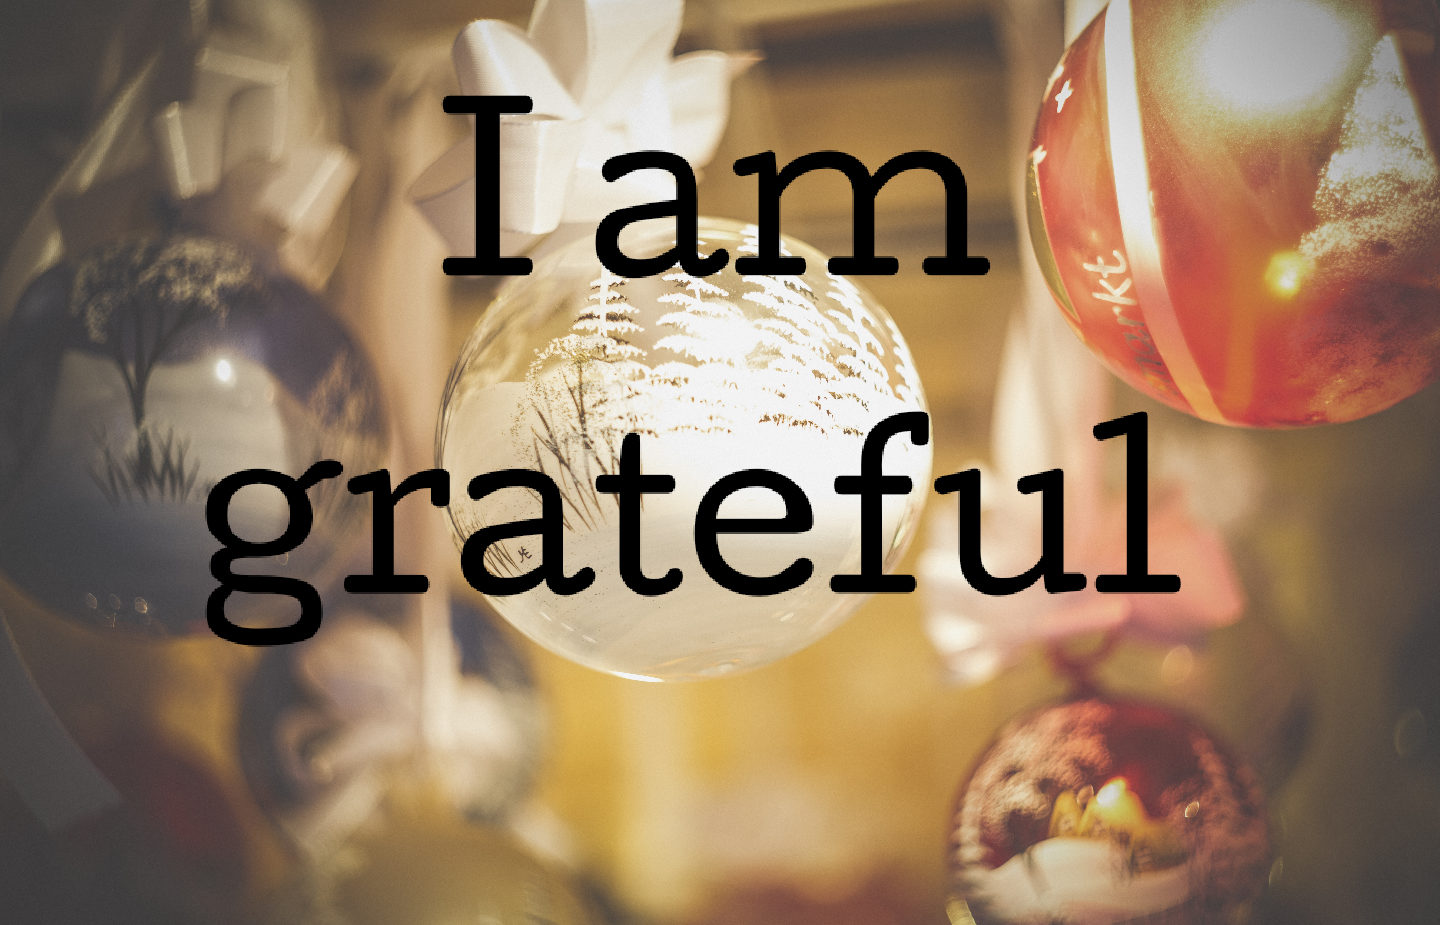 Today, on Christmas Day, I am grateful [028]